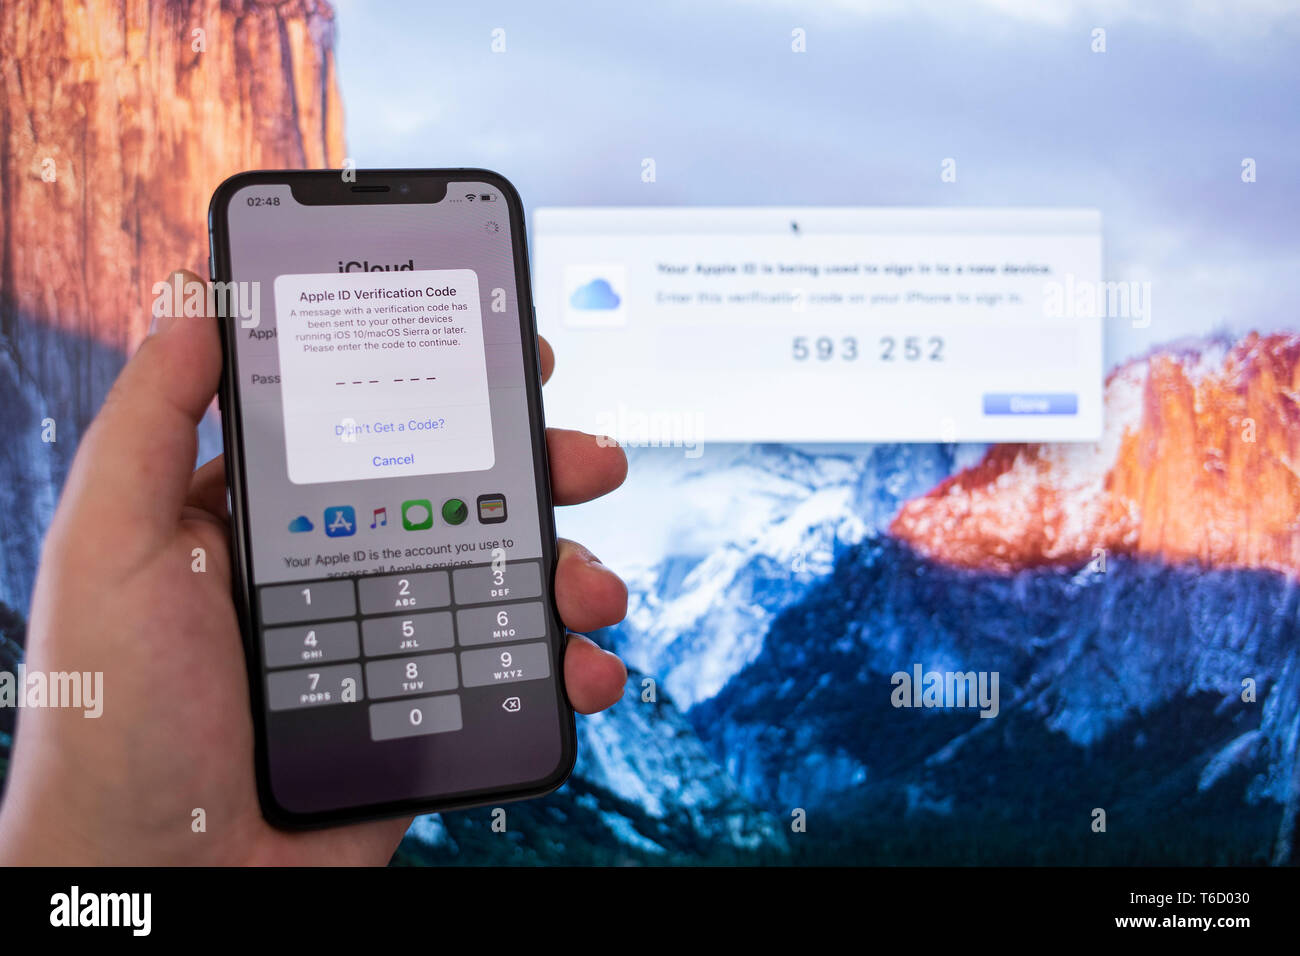 Apple Iphone XS Space Gray Screen with Two-factor authentication - Stock Image